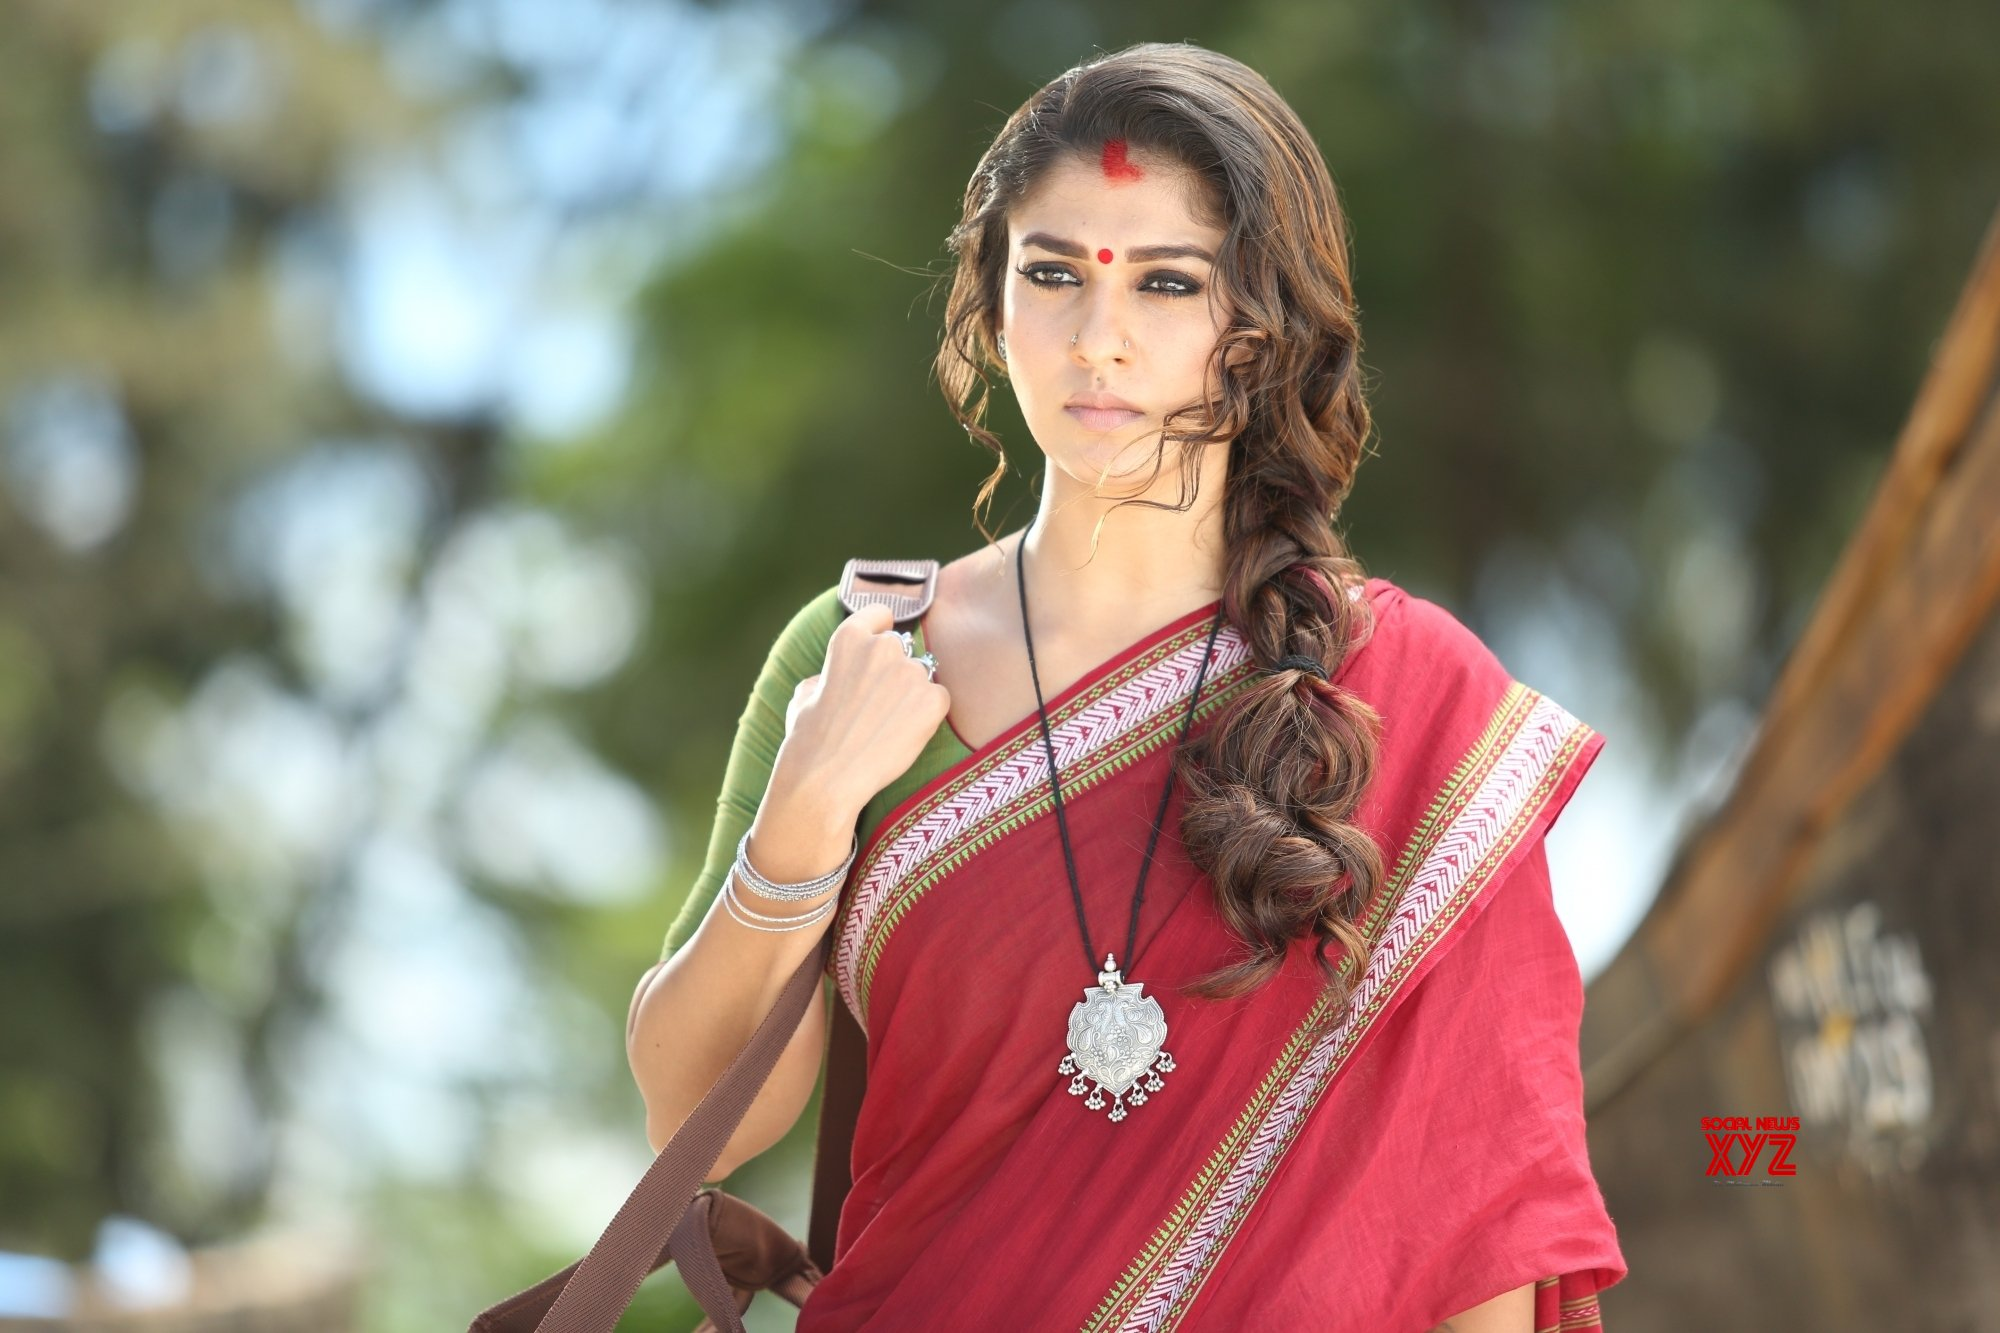 It's Nayanthara vs Samantha in 'Kaathu Vaakula Rendu Kadhal'